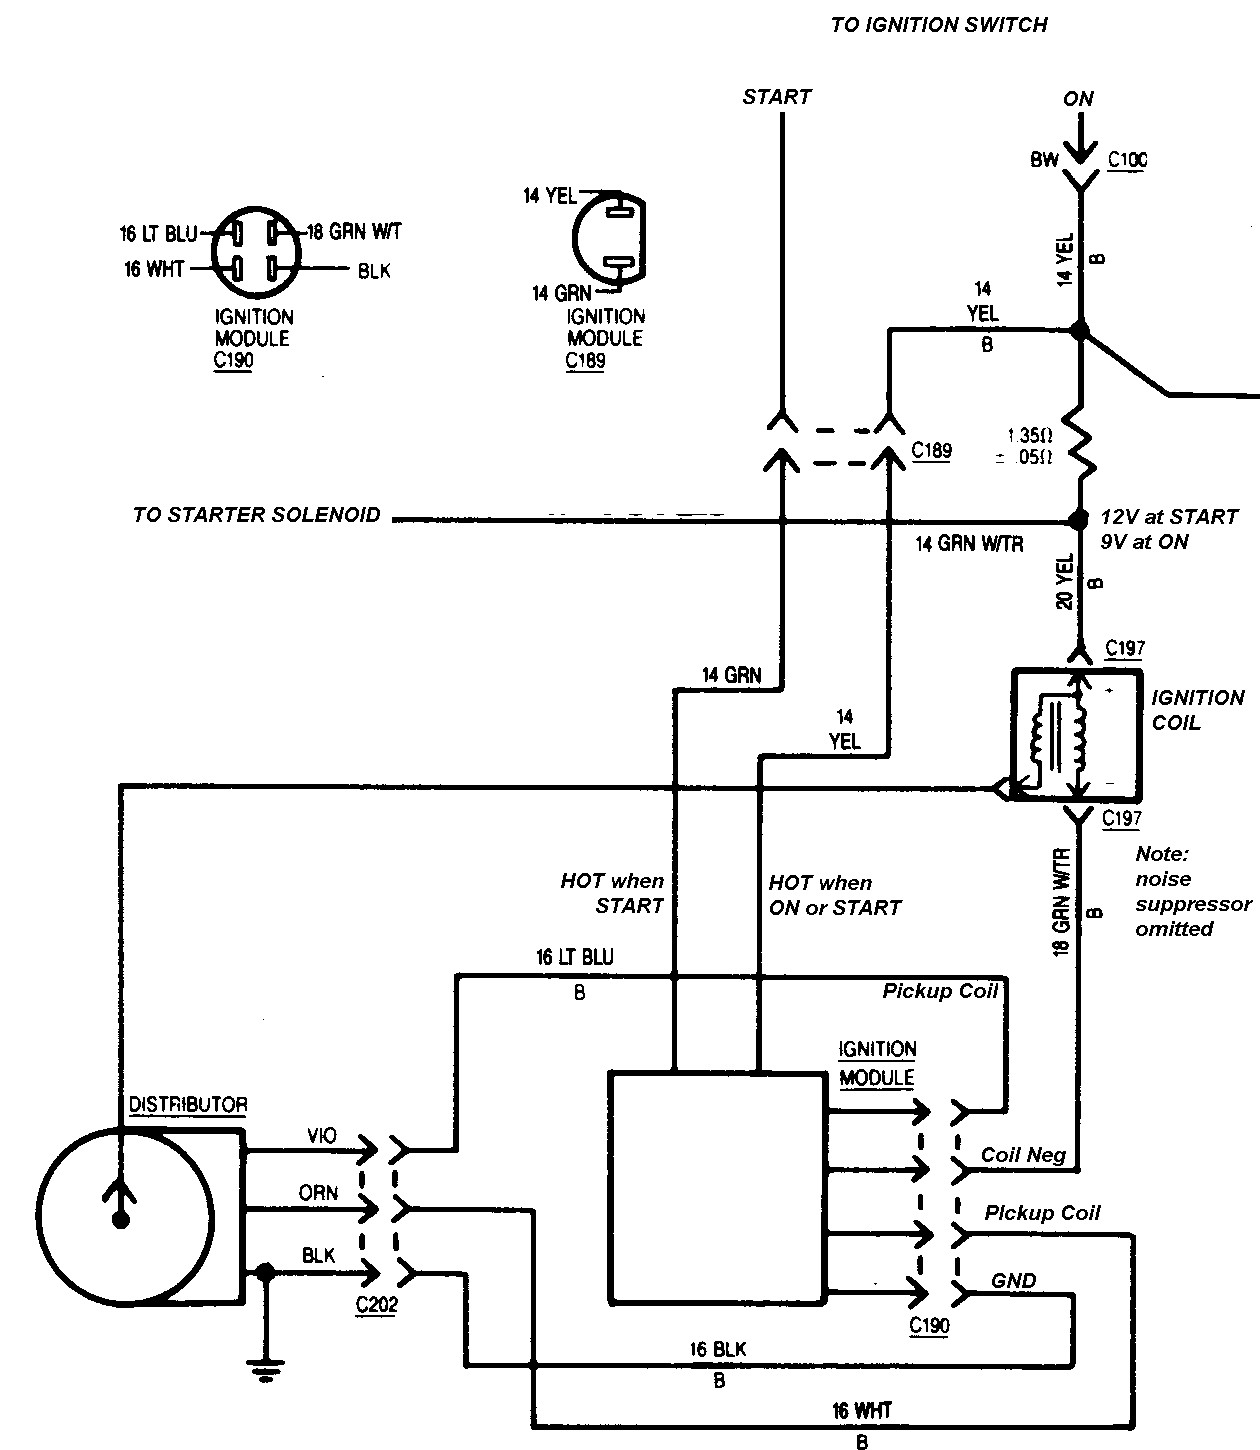 1977 chevy 350 distributor wiring diagram [ 1260 x 1450 Pixel ]